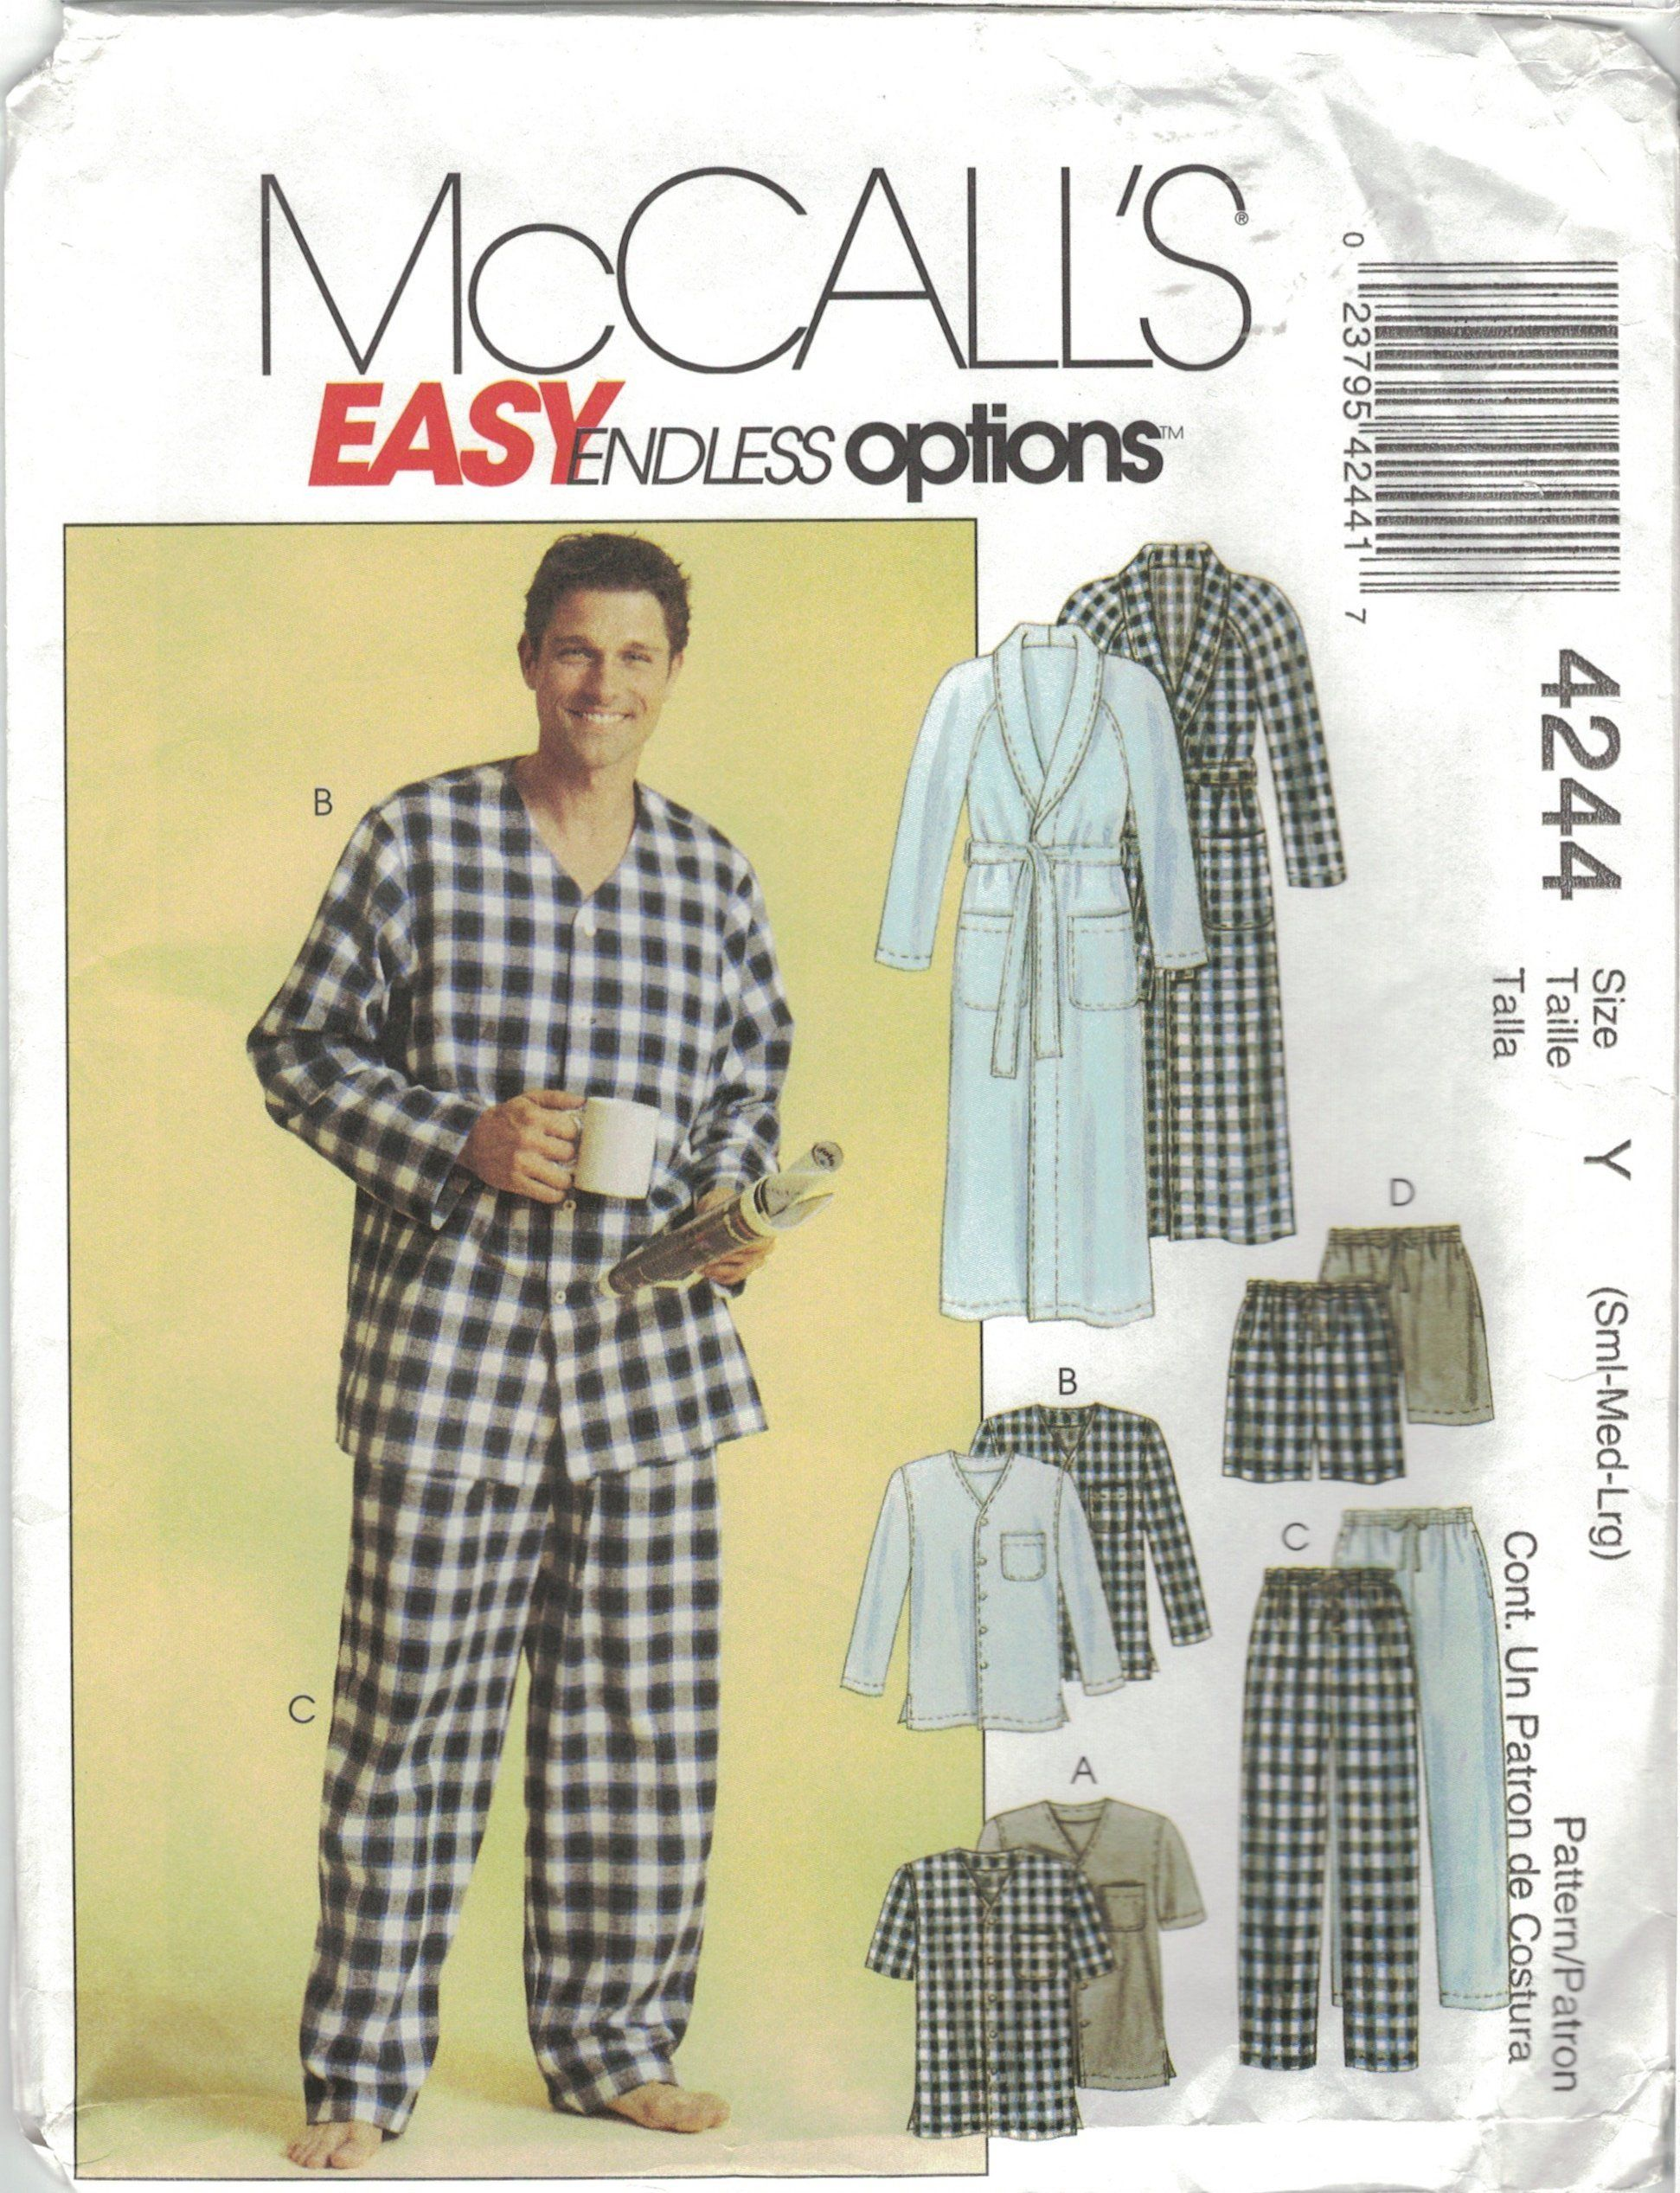 bb43b21375 McCall s Easy 4244 Men s Pajama Pants Shorts   Robe Sleepwear Pattern Size  Small Med Large 34-44 by TheTasteLady on Etsy